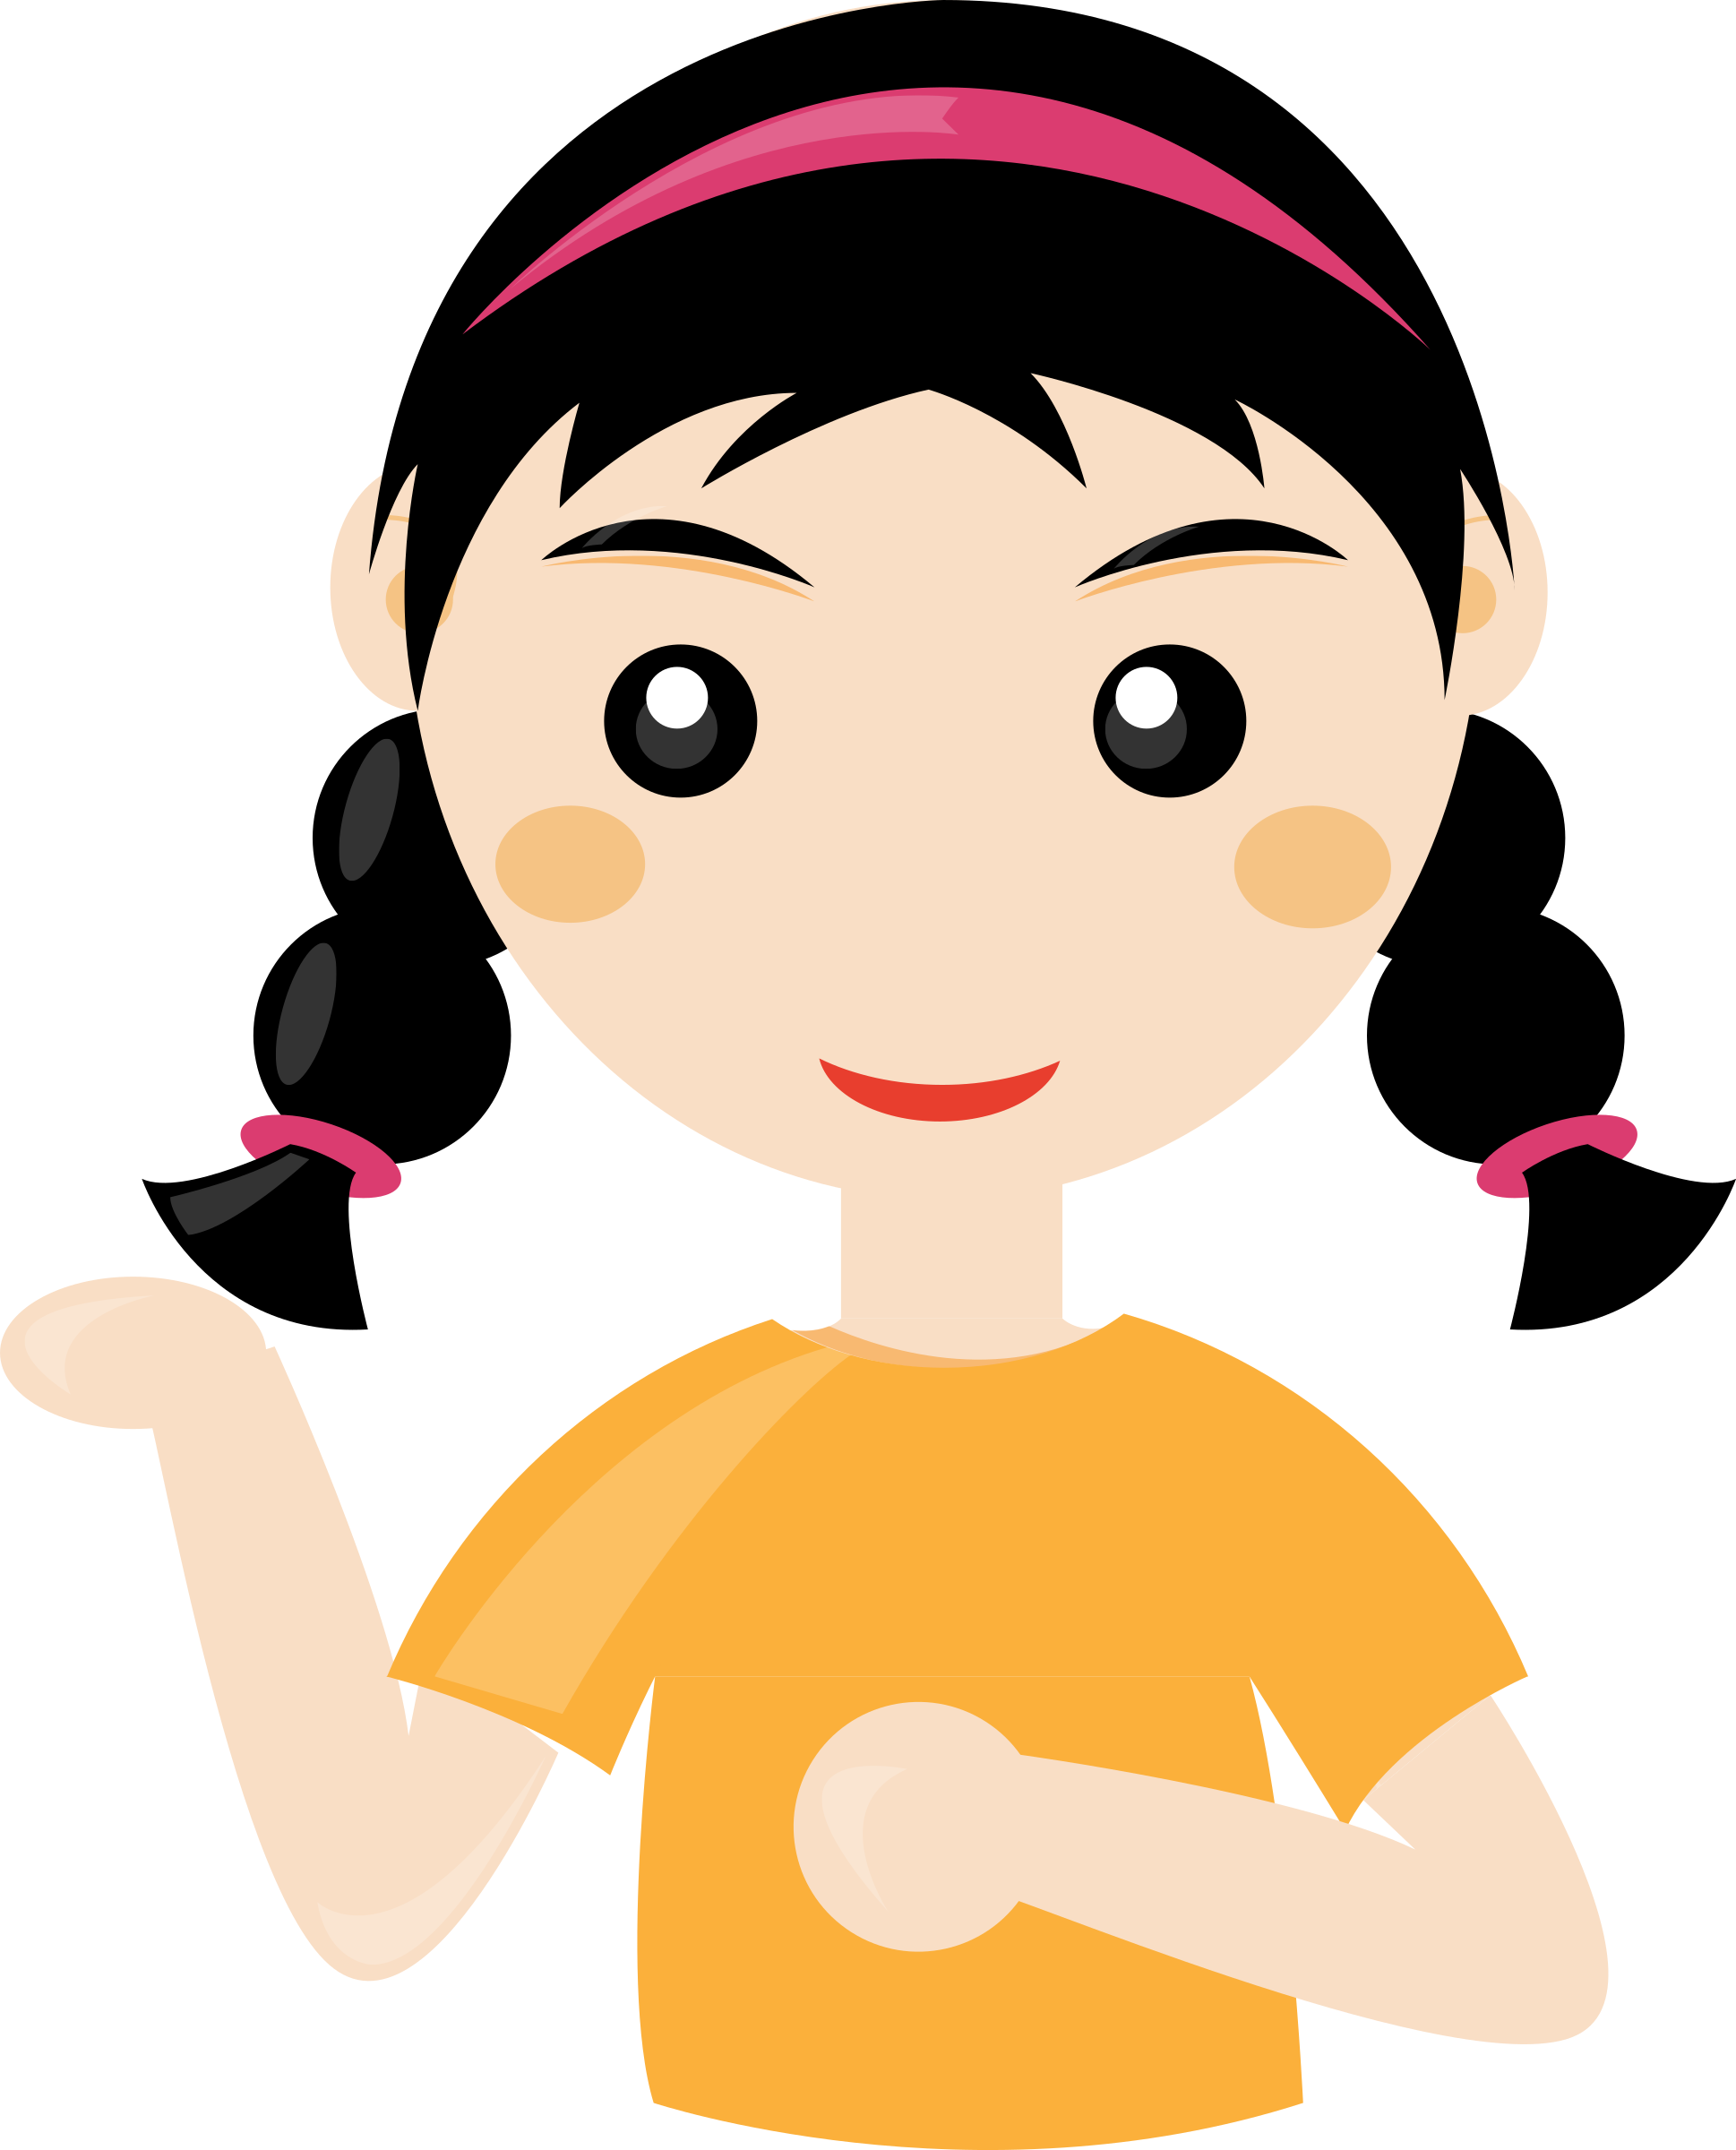 Person cartoon png. Clipart cute girl big